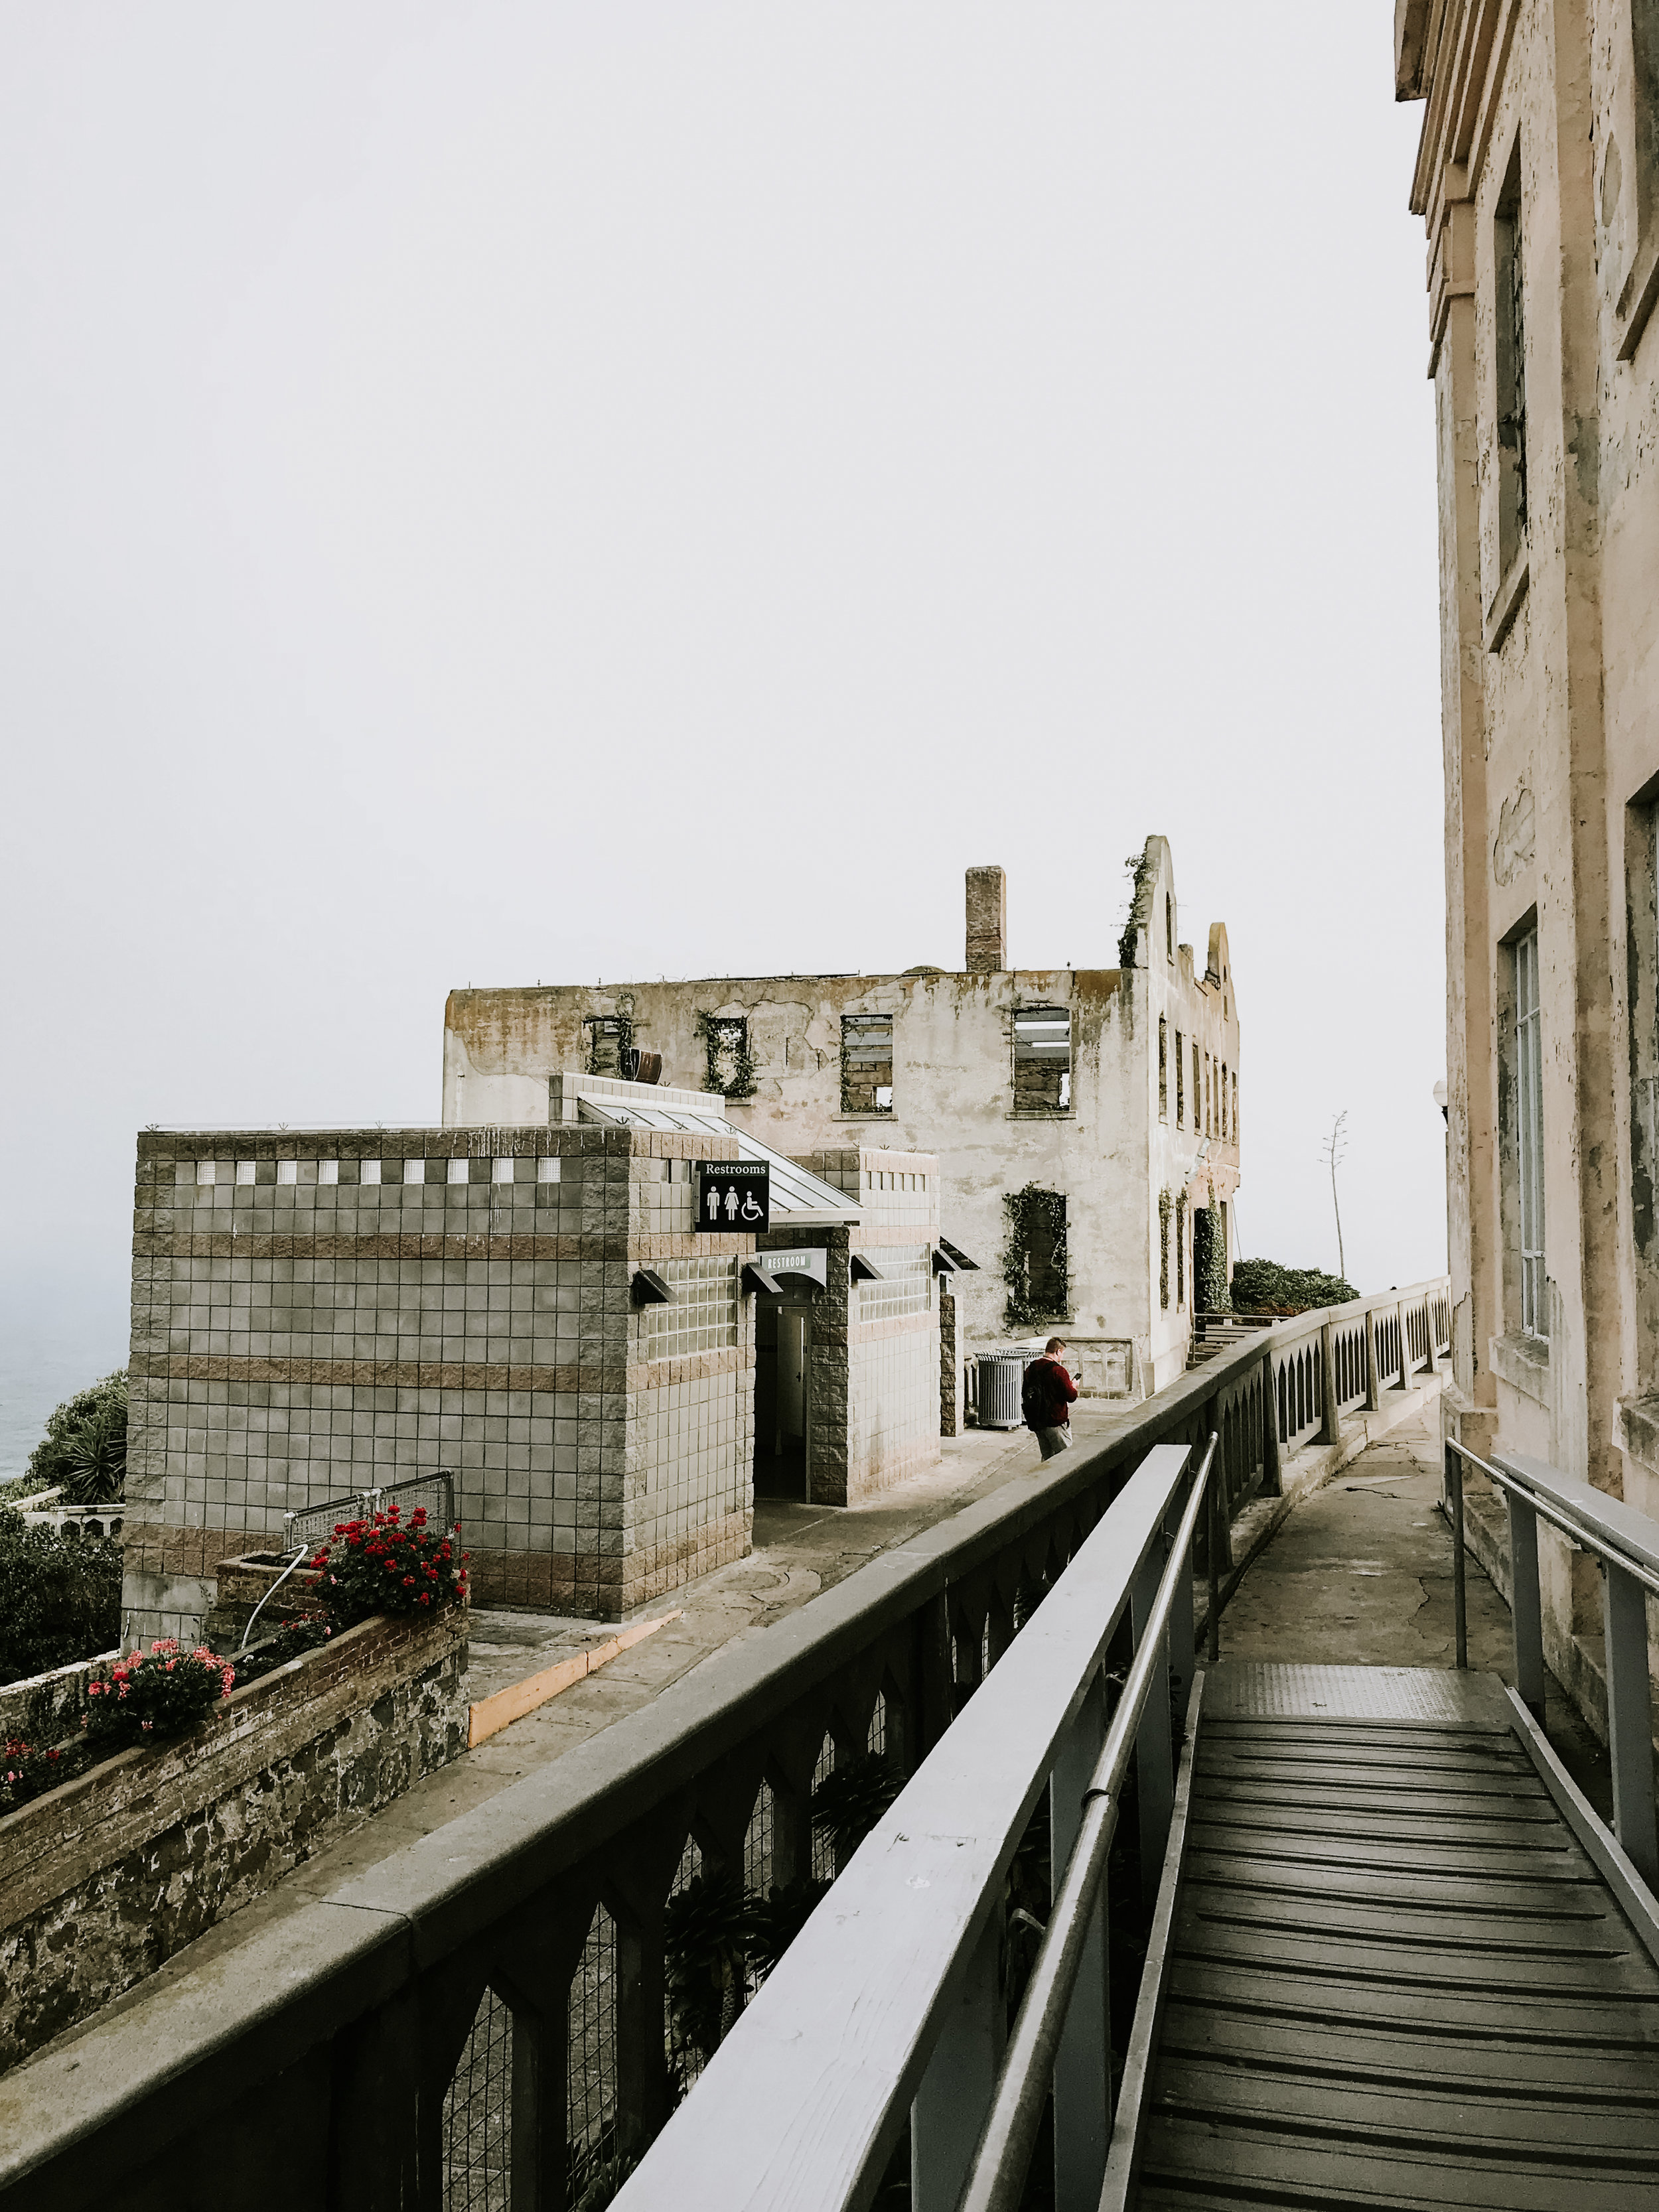 our trip to San Francisco - Alcatraz island and prison on the San Francisco bay